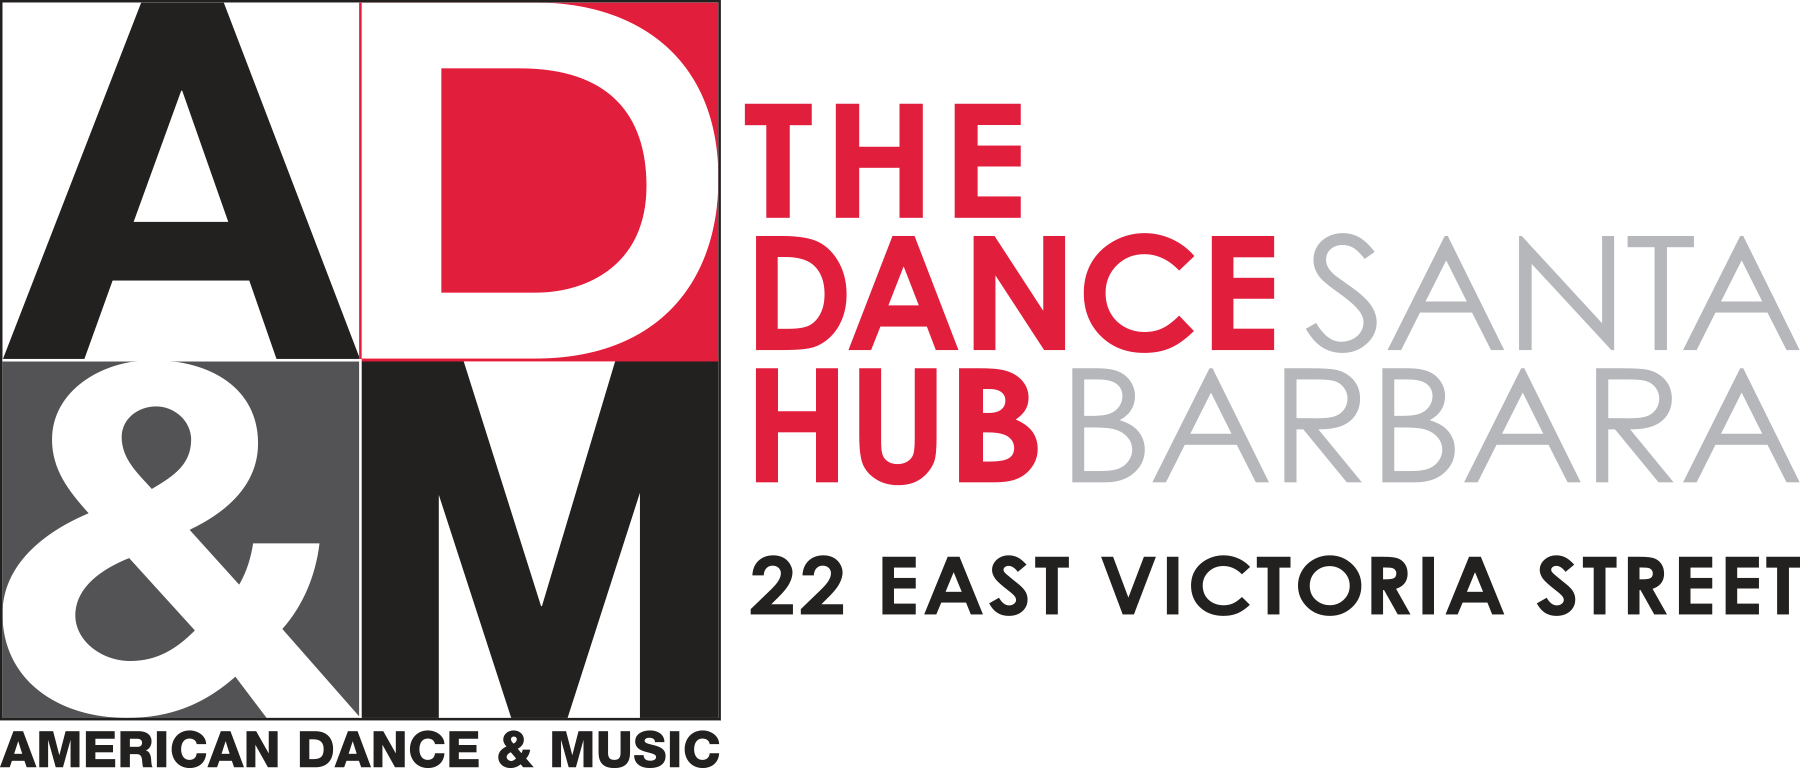 The Dance Hub Santa Barbara